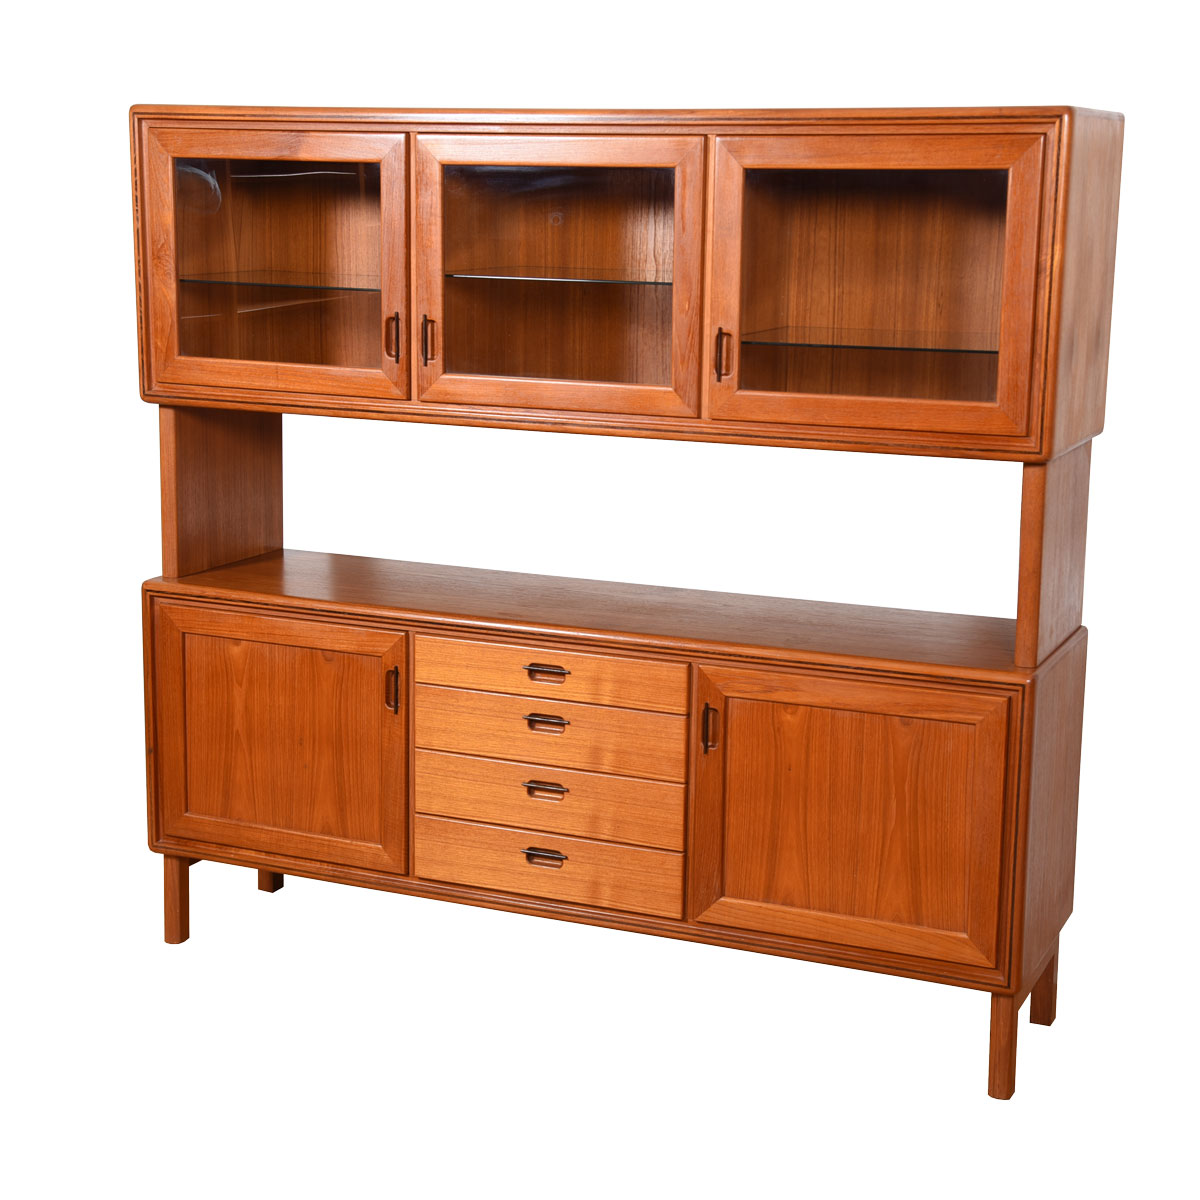 Swedish Modern Double Decker Lighted Teak Highboard w/ Serving Shelf